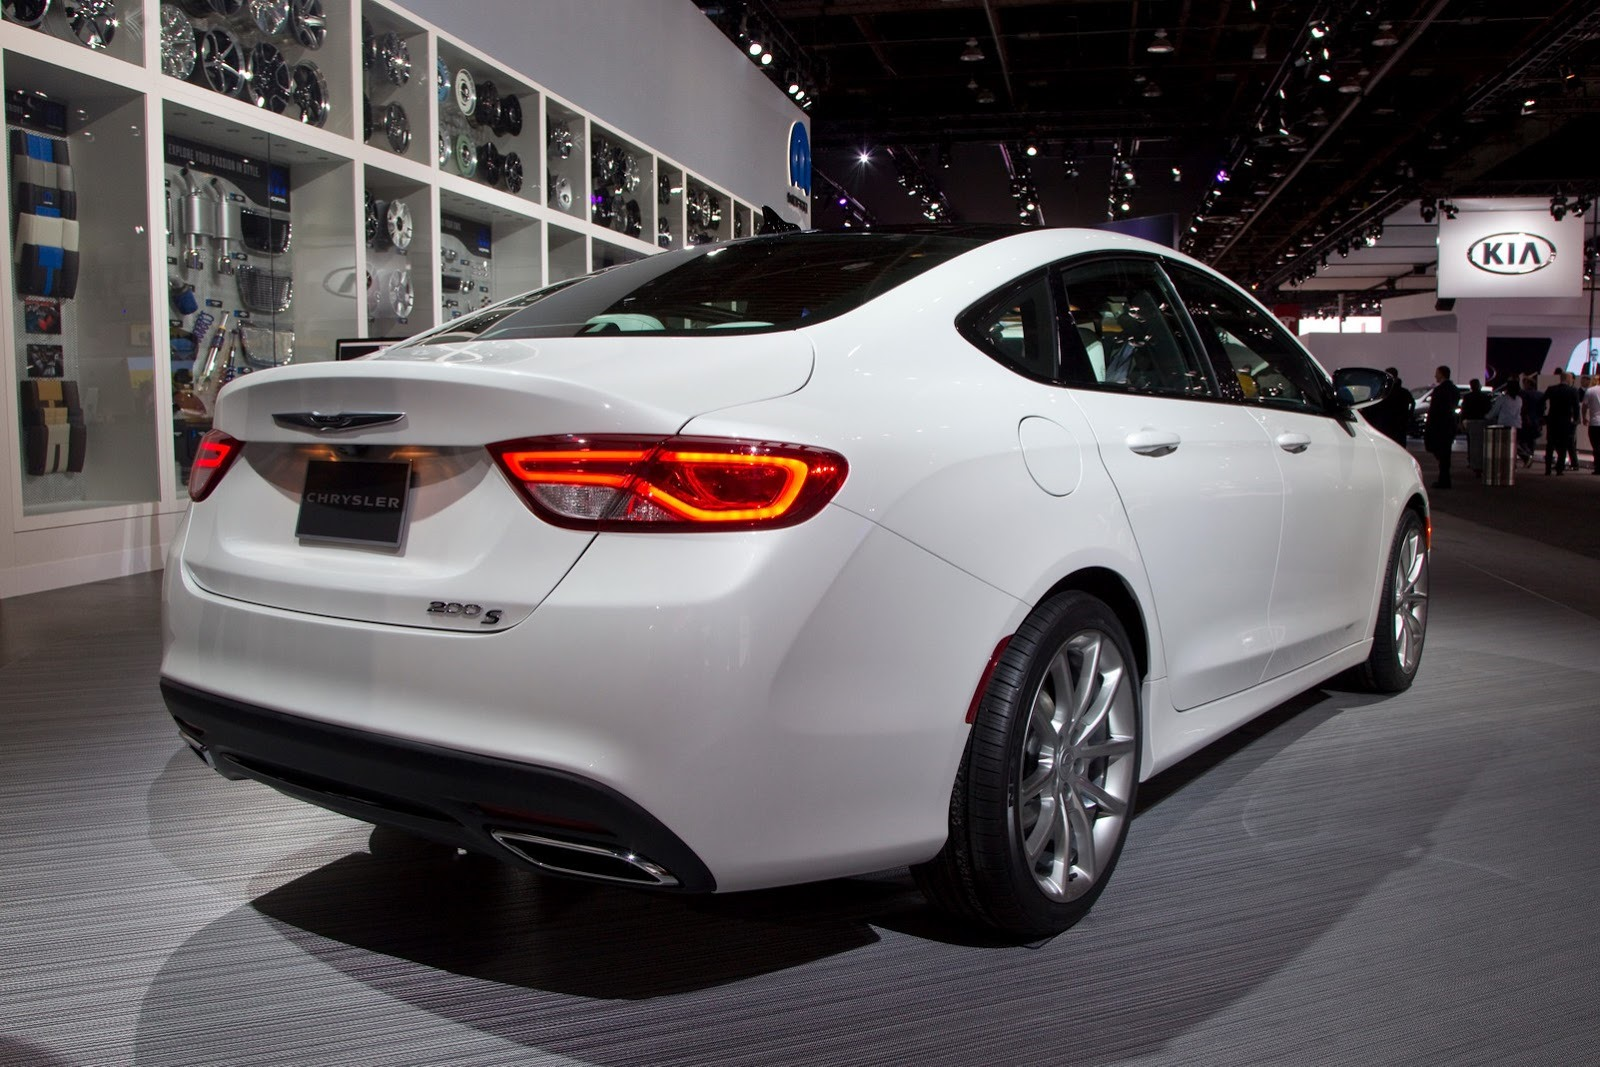 may have noticed a white 2015 chrysler 200 in ourdetroit motor show gallery of the car that s not a regular edition of chrysler s mid size sedan